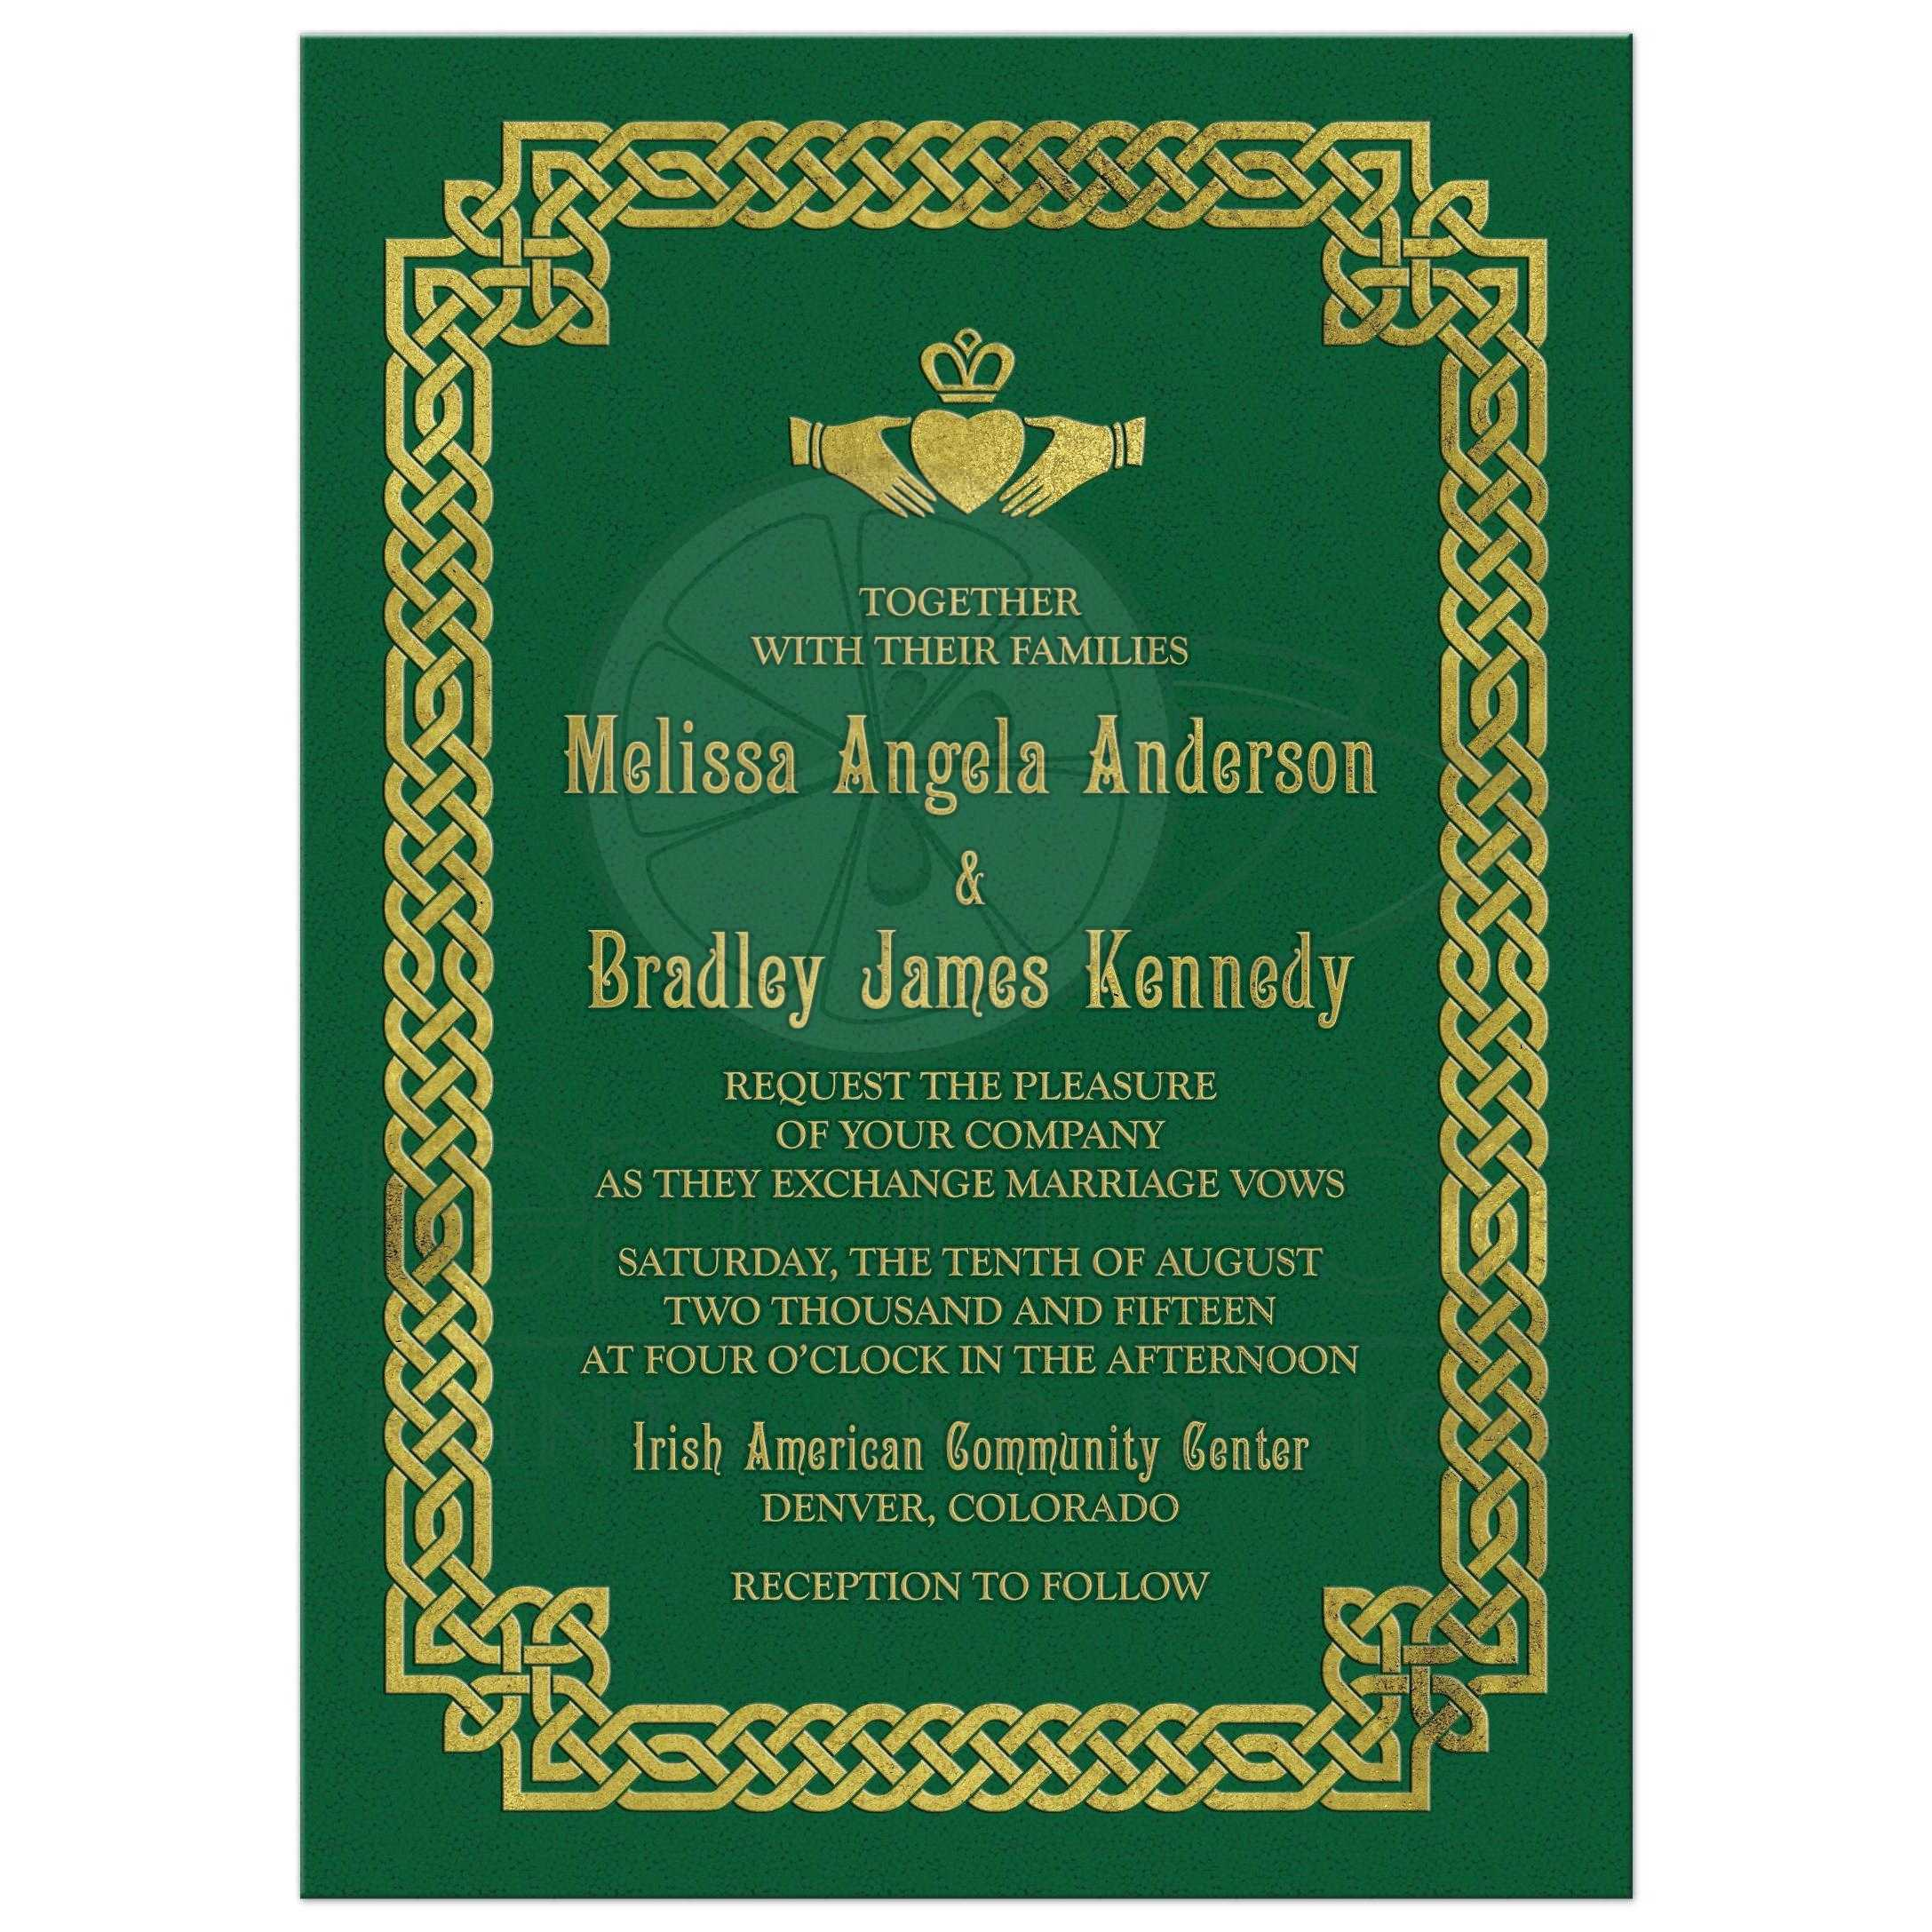 Irish celtic wedding invitation green gold claddagh knot green and gold irish celtic love knot and claddagh wedding invitation front monicamarmolfo Image collections